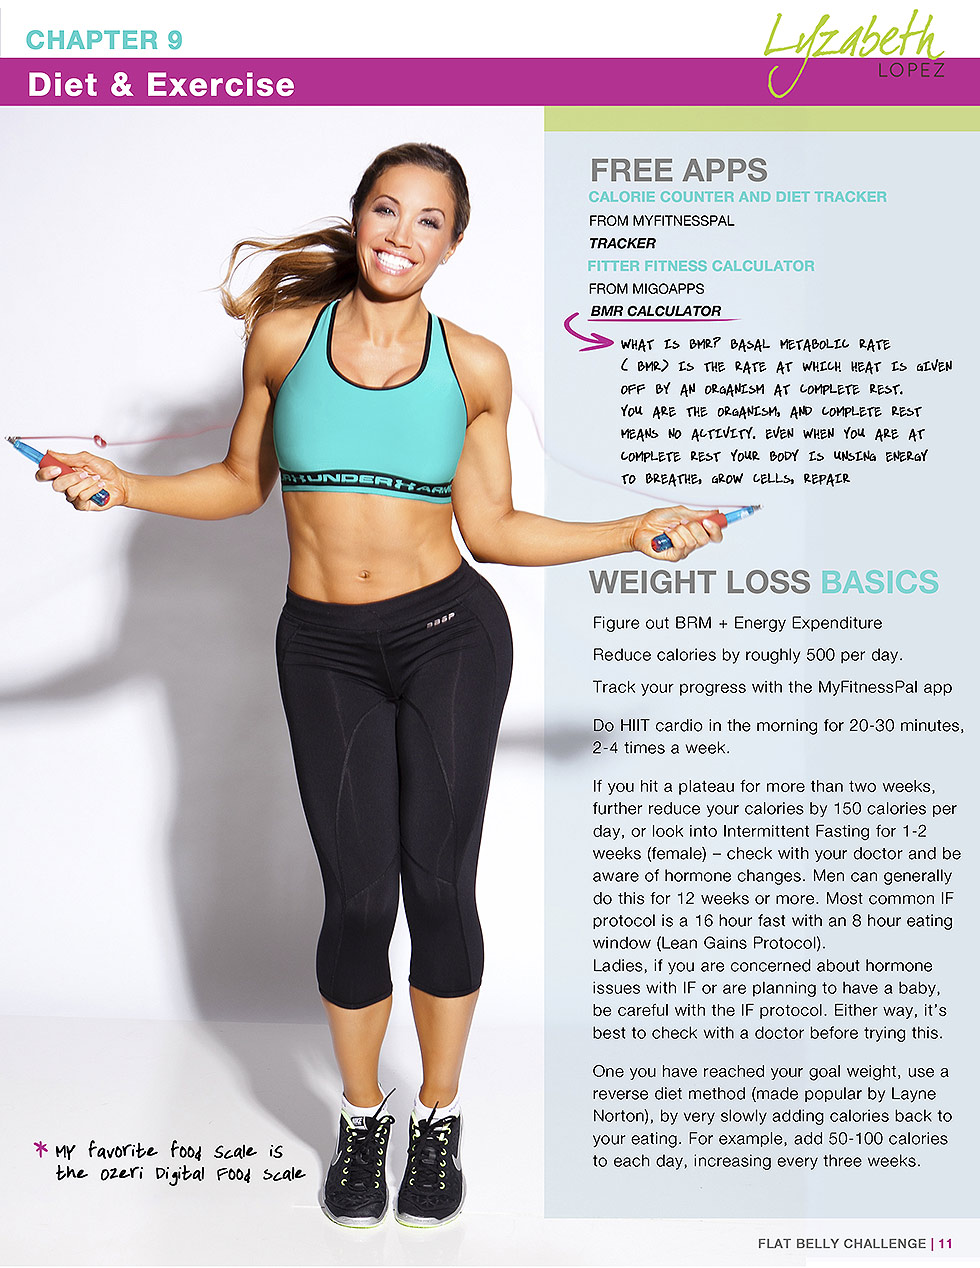 flat-belly-challenge-lyzabeth-lopez_Page_11